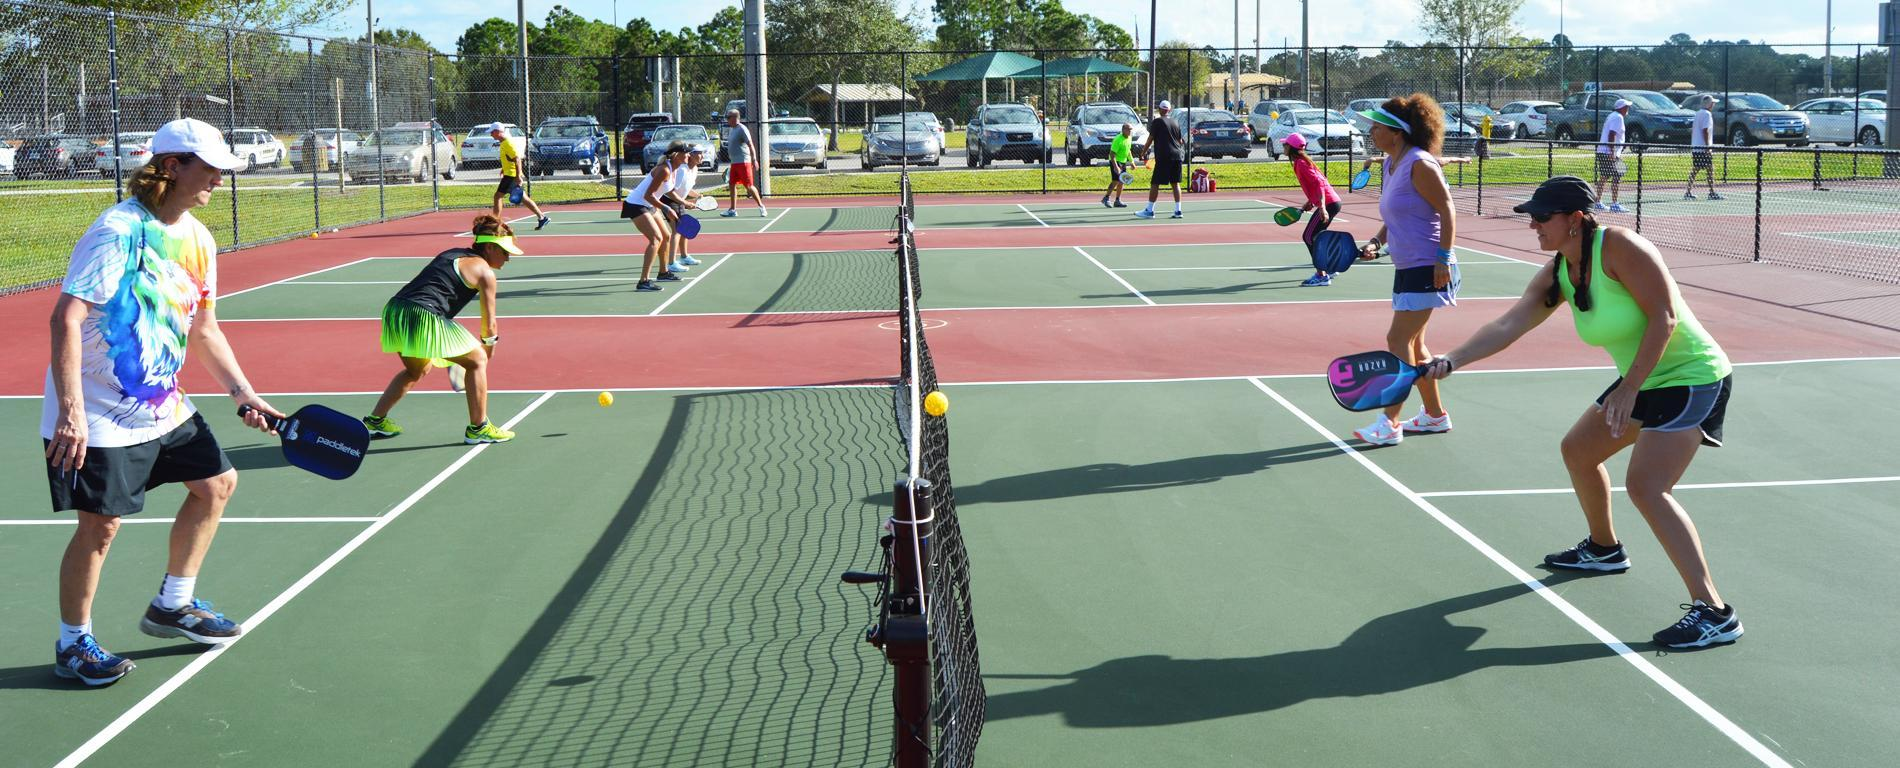 Martin County Senior Games participants playing pickleball.